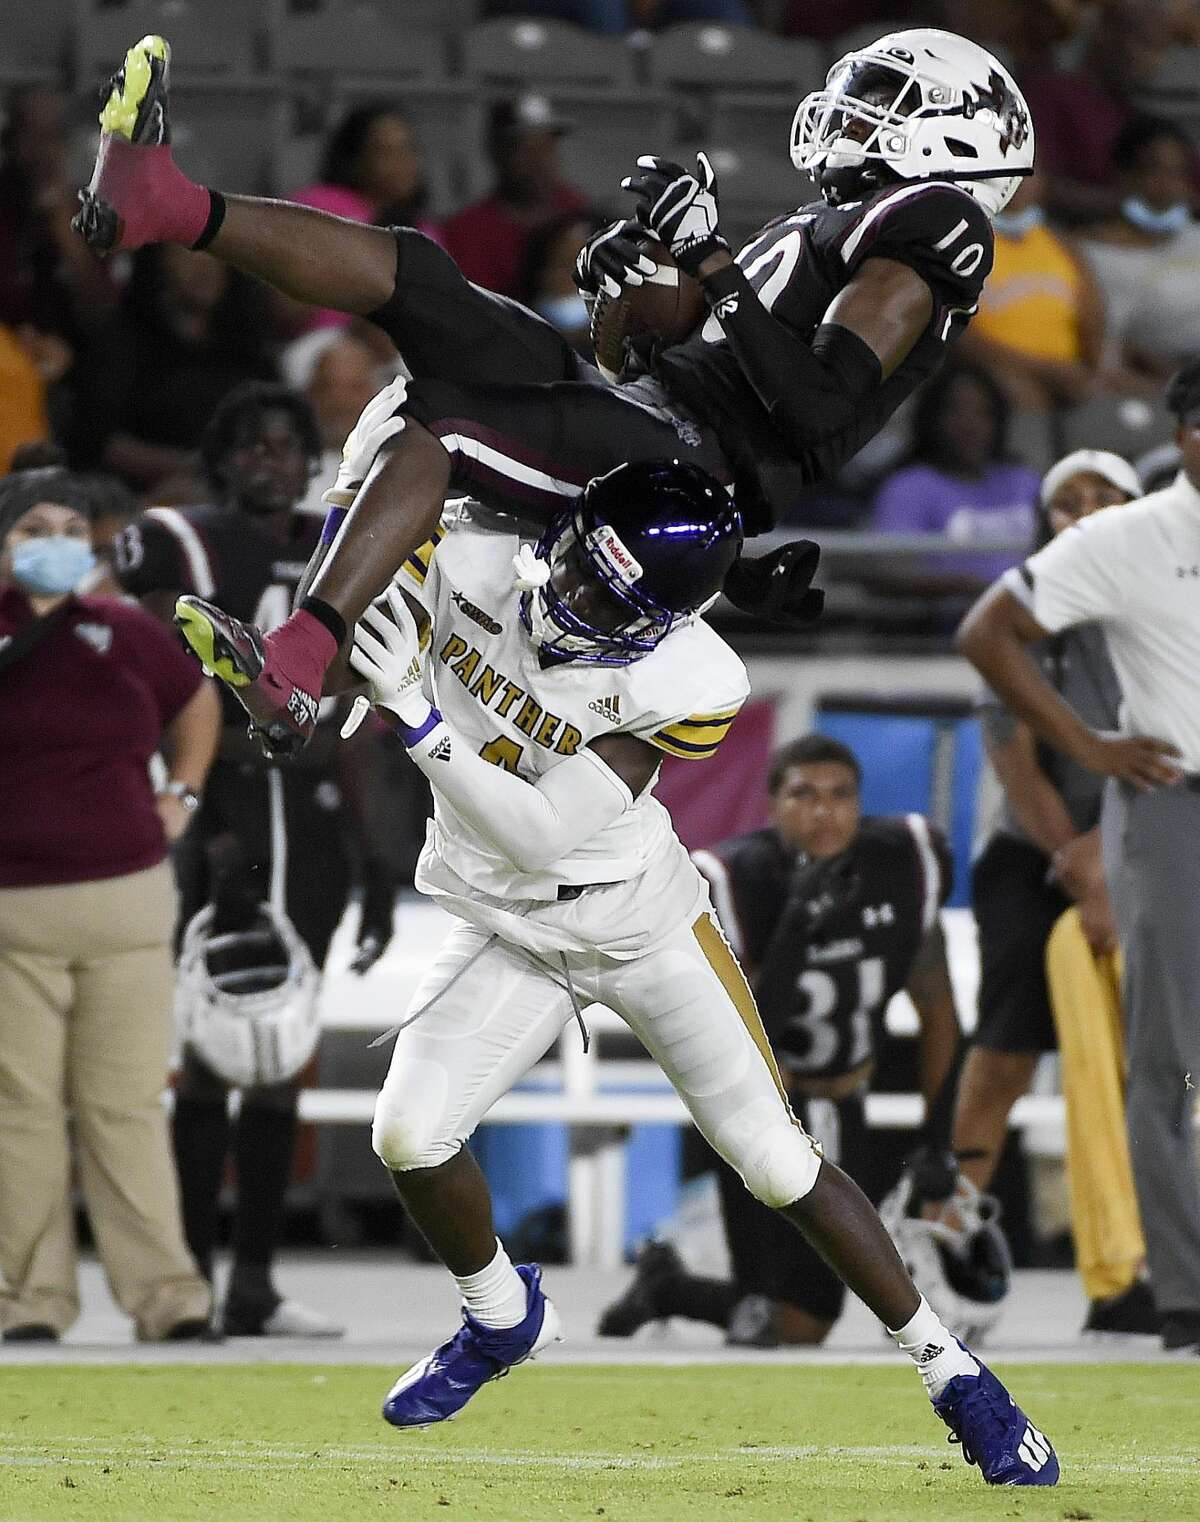 Texas Southern wide receiver Ke'Lenn Davis is tackled by Prairie View A&M defensive back Xavier Johnson after catching a pass during the second half of an NCAA college football game, Saturday. Sept. 4, 2021, in Houston.